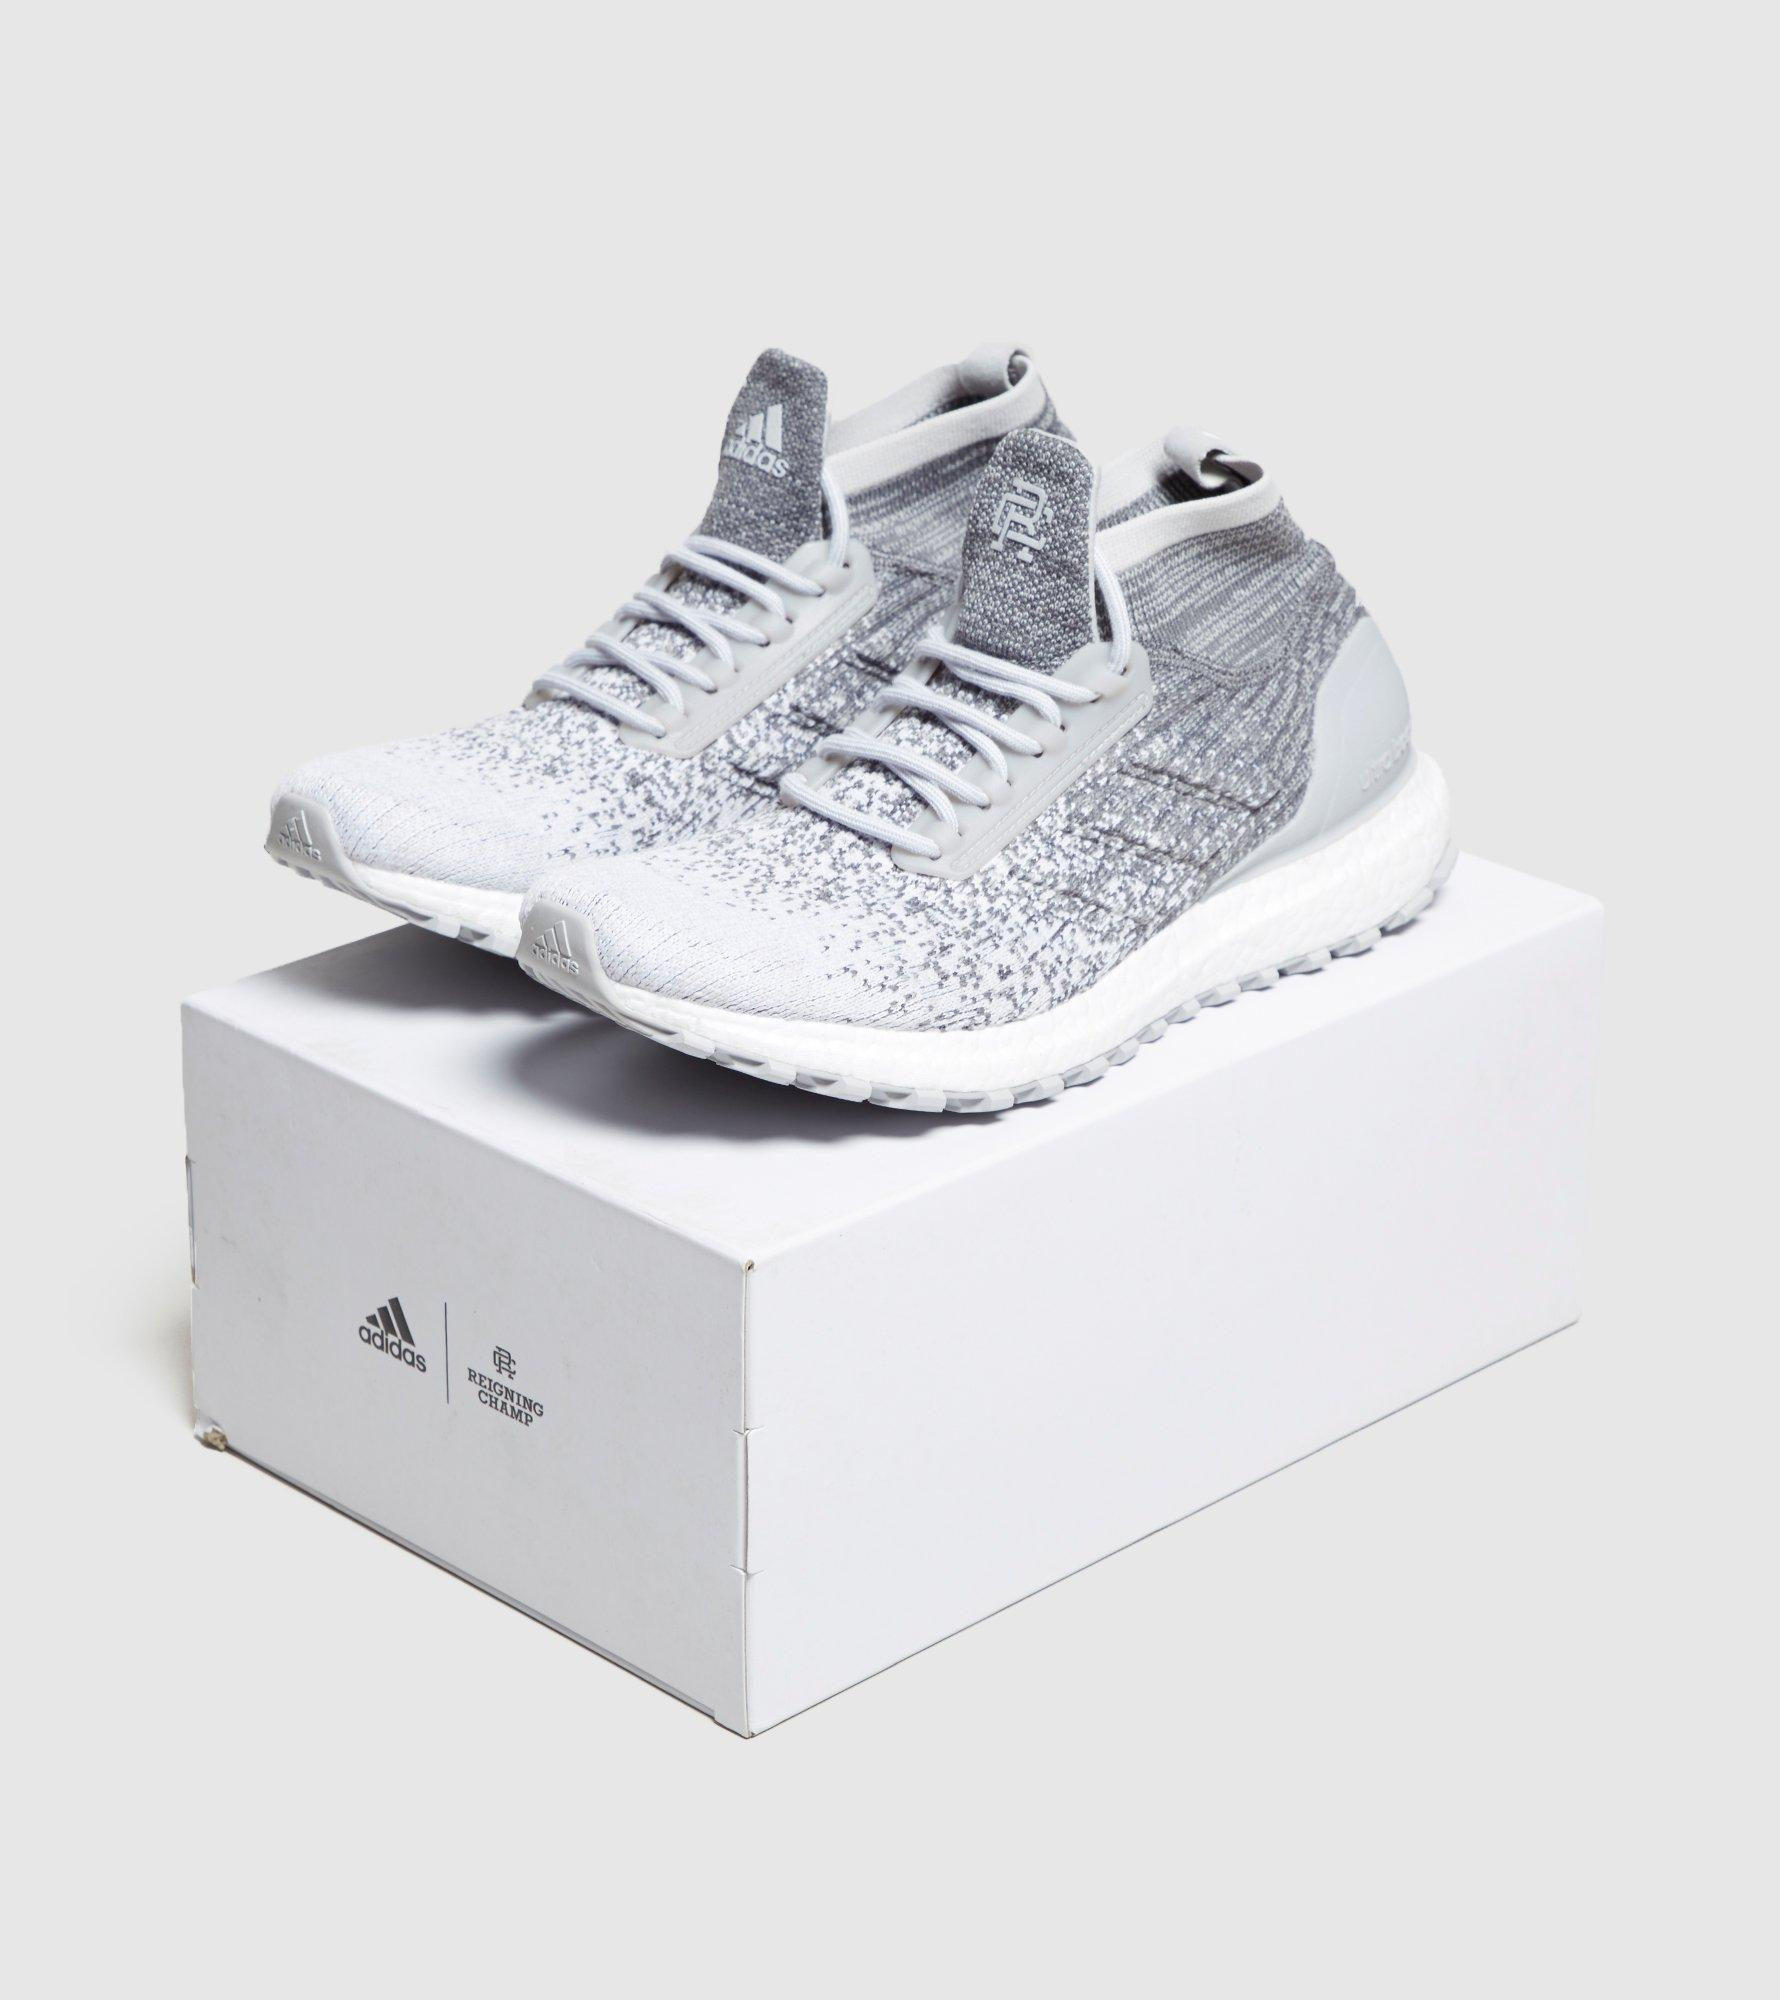 huge selection of eb58b f13d7 Men's White X Reigning Champ Ultra Boost Atr